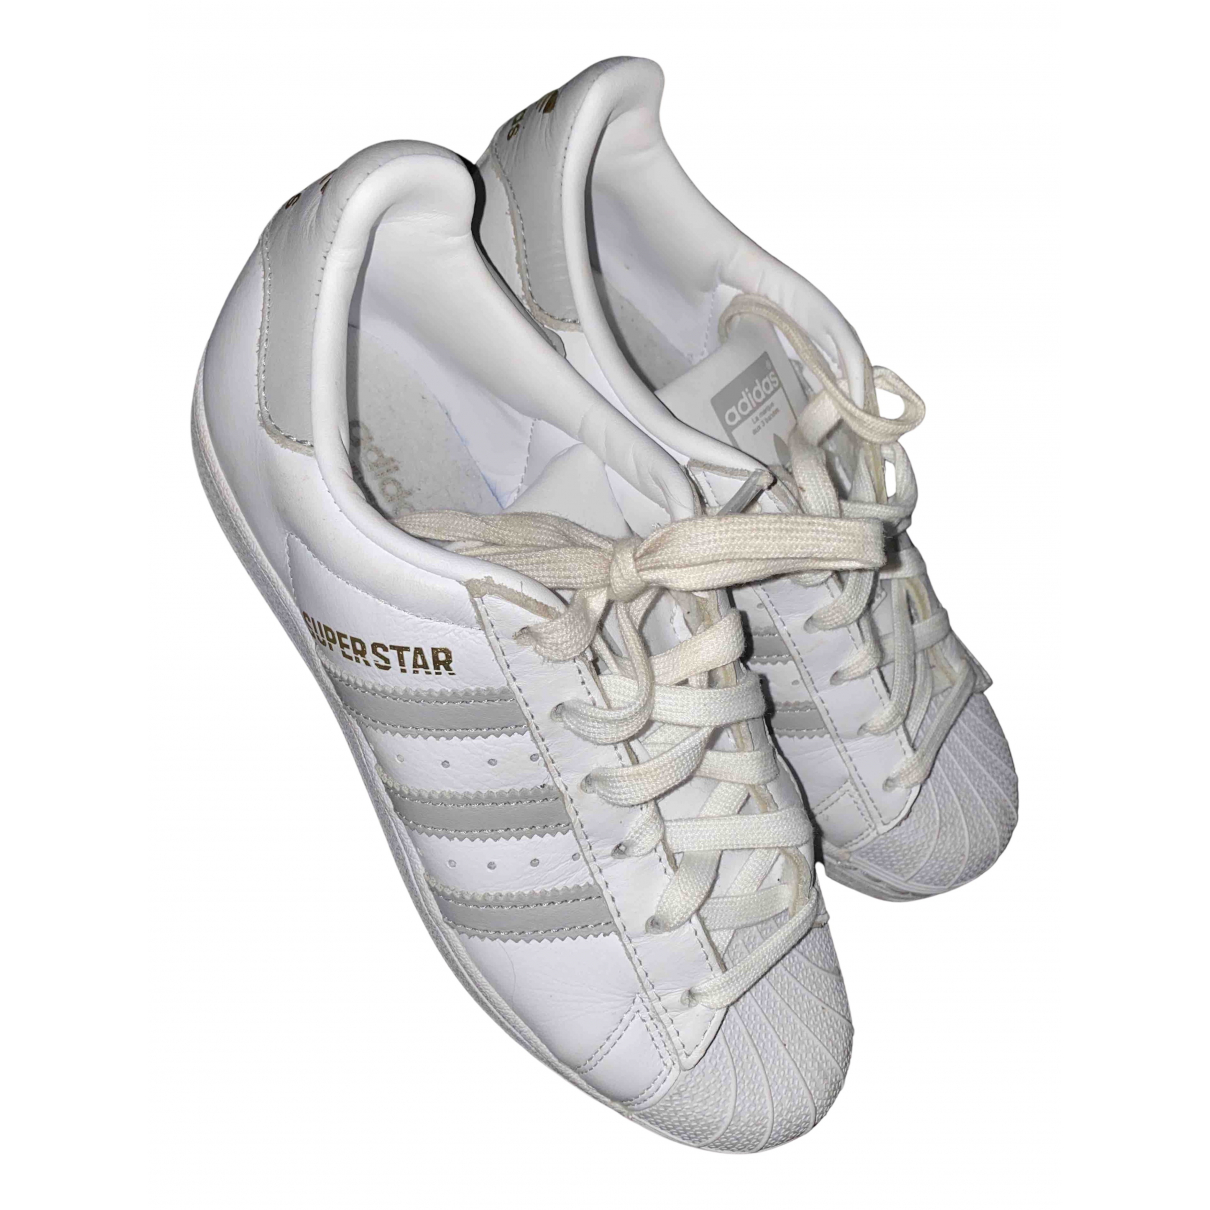 Adidas Superstar White Leather Trainers for Women 37.5 EU